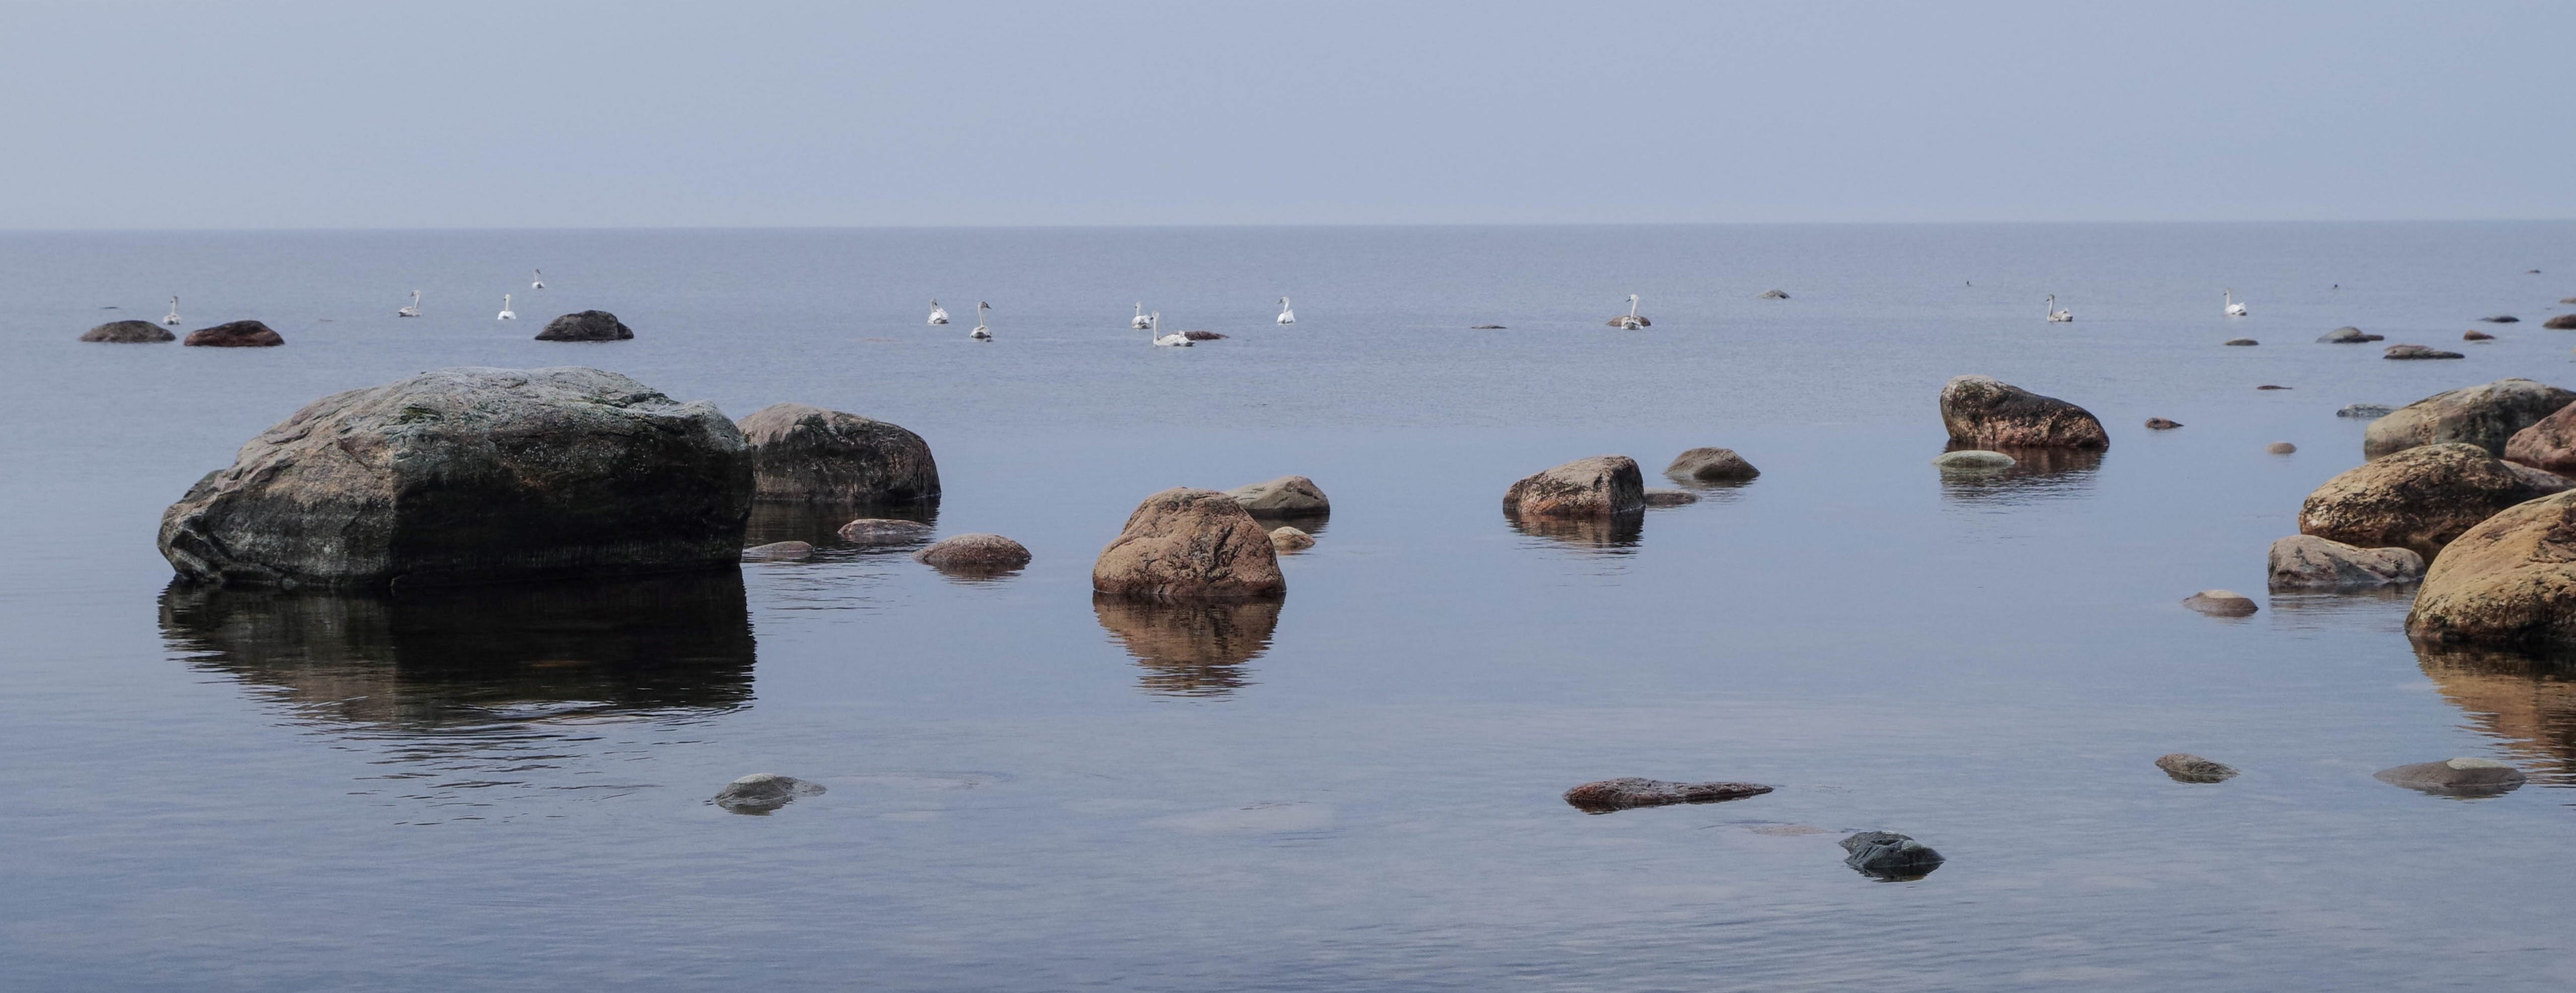 Photography of Brown Rocks Near Body of Water at Daytime